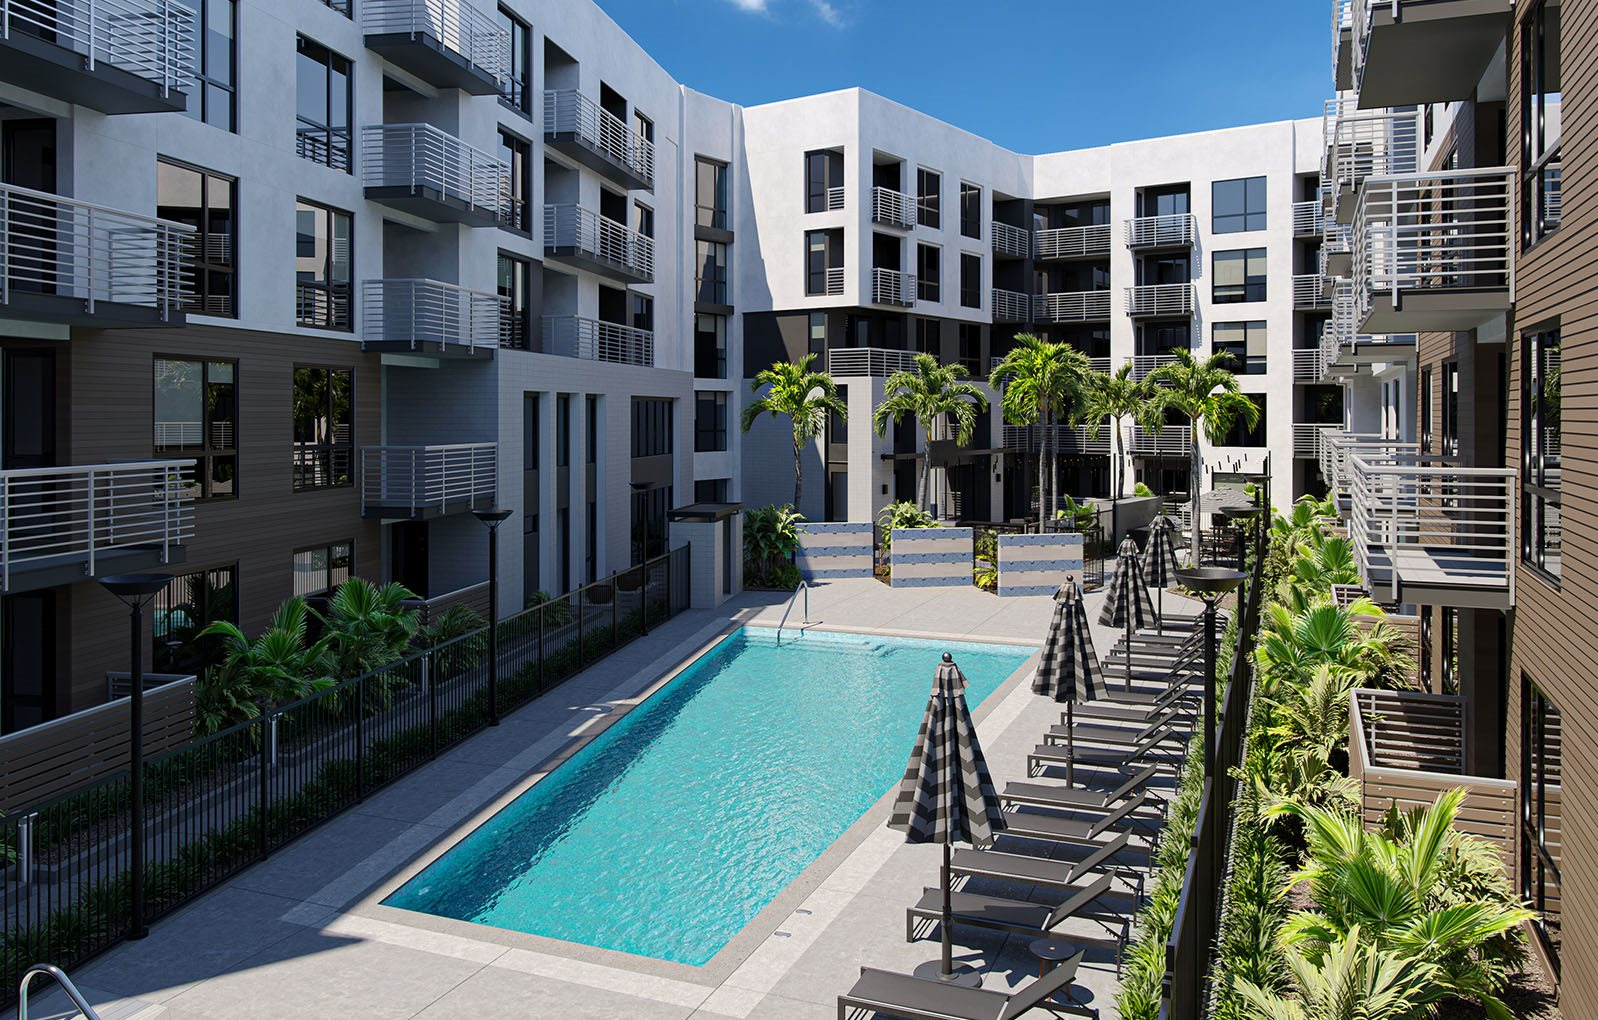 outdoor pool surrounded by apartment building